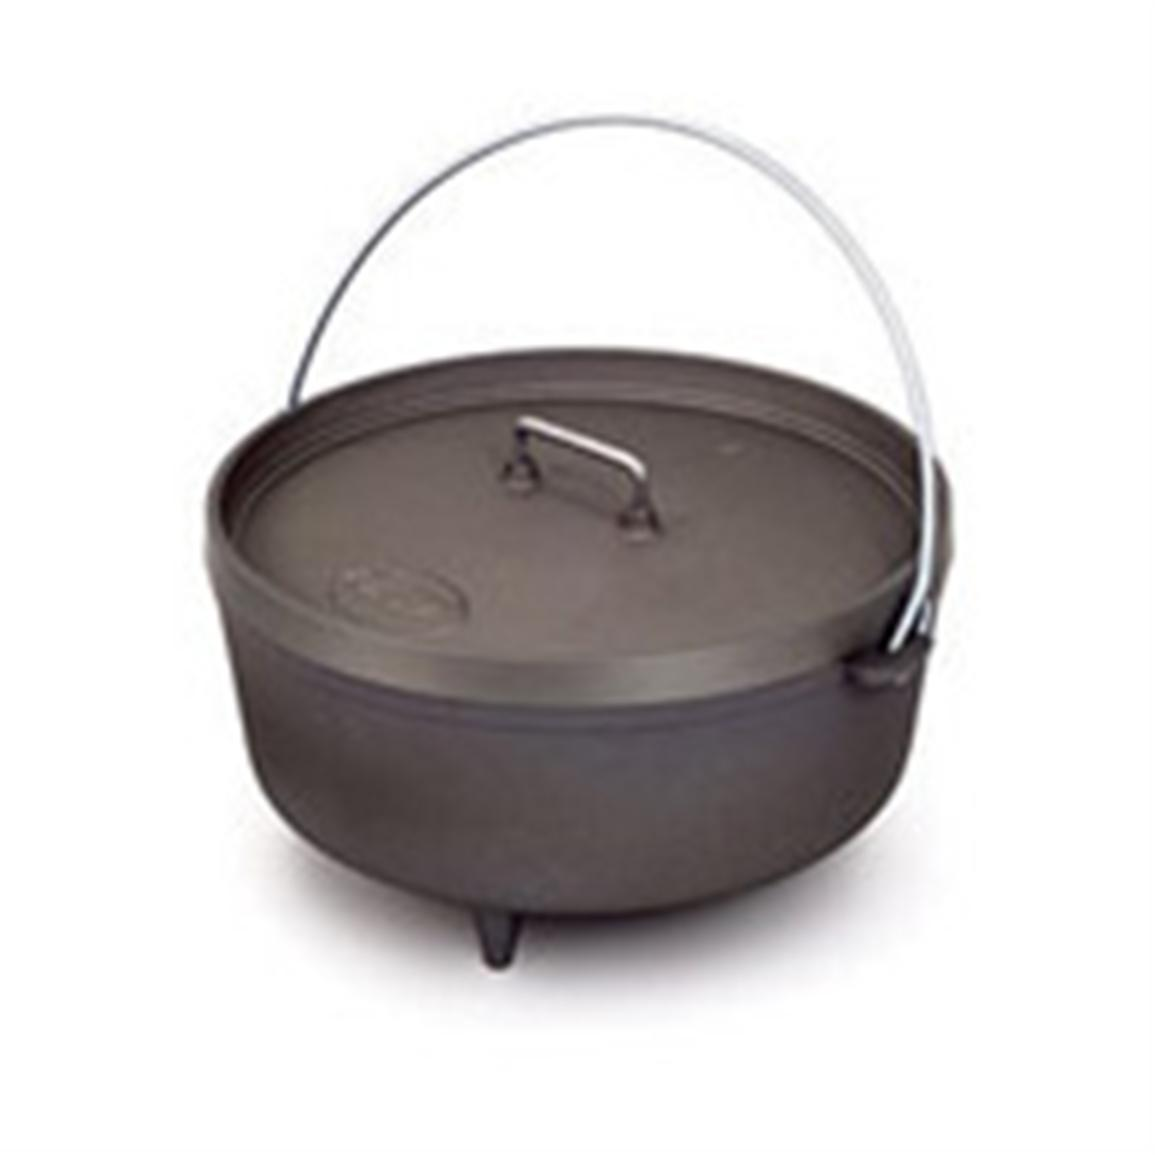 "GSI 12"" Hard Anodized Dutch Oven"